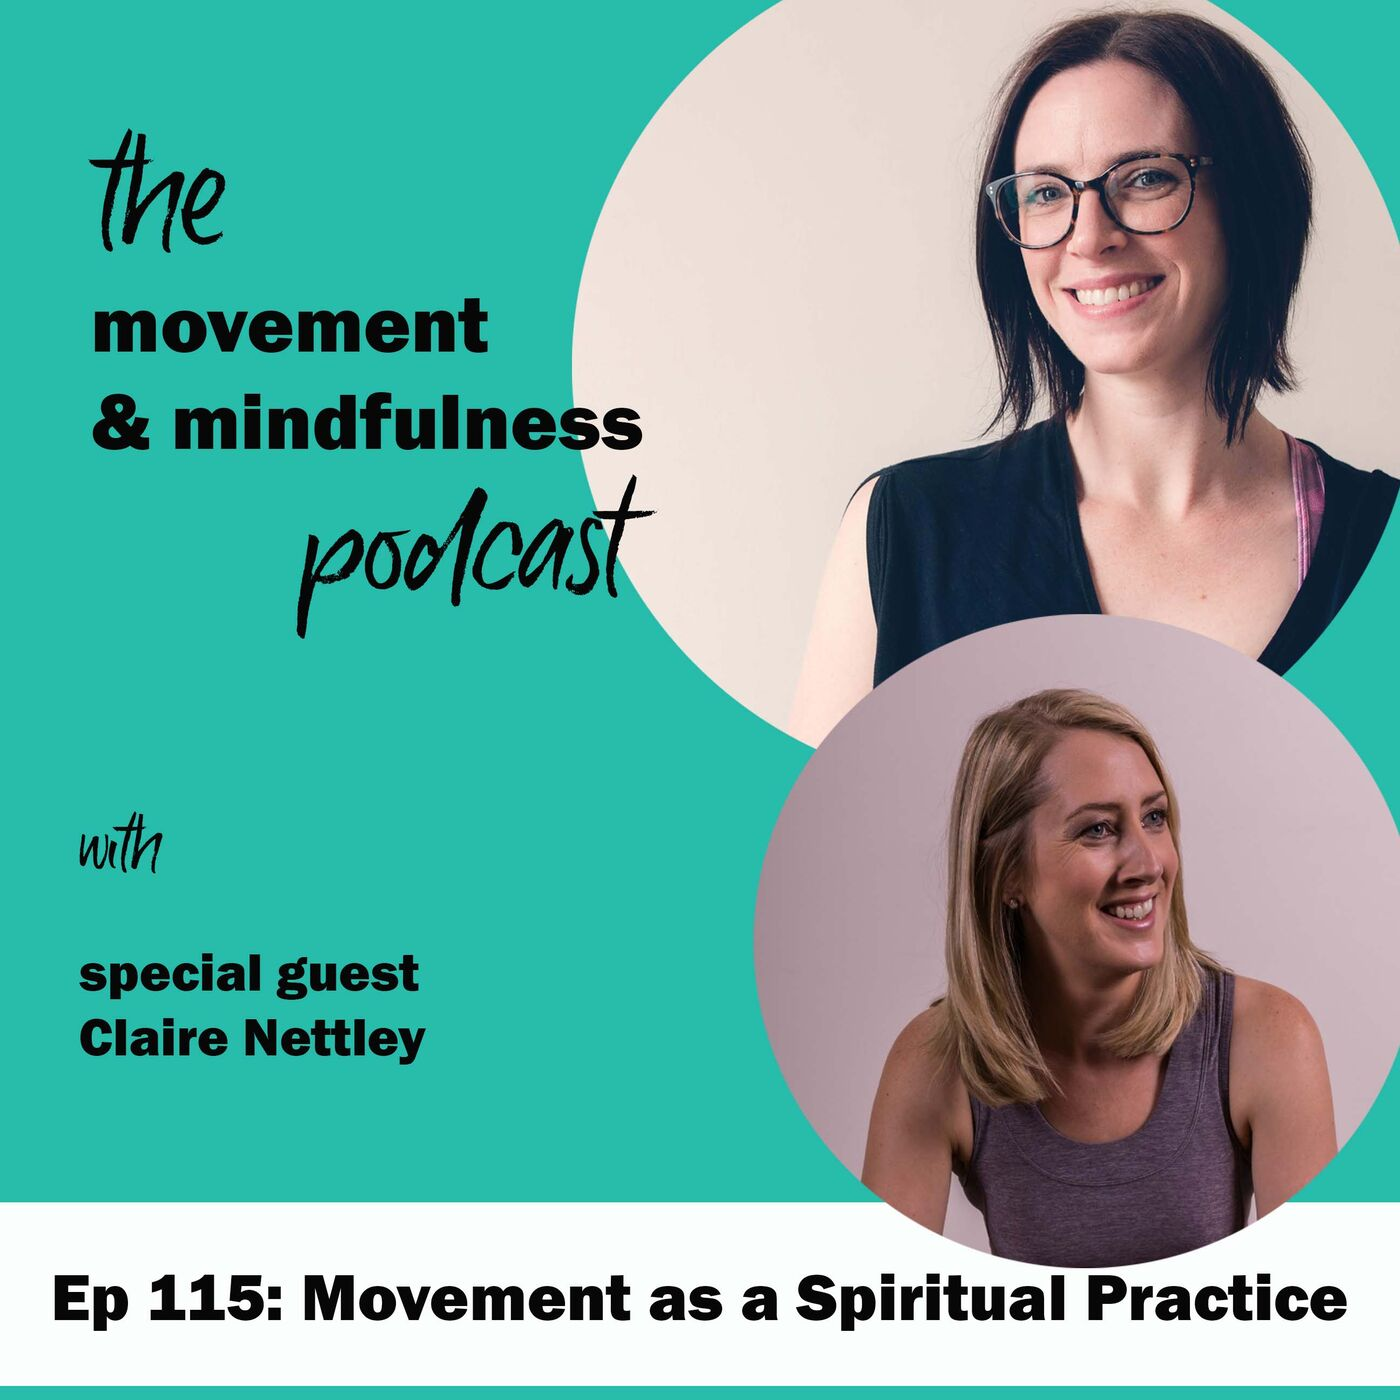 Ep 115: Movement as a Spiritual Practice with Claire Nettley